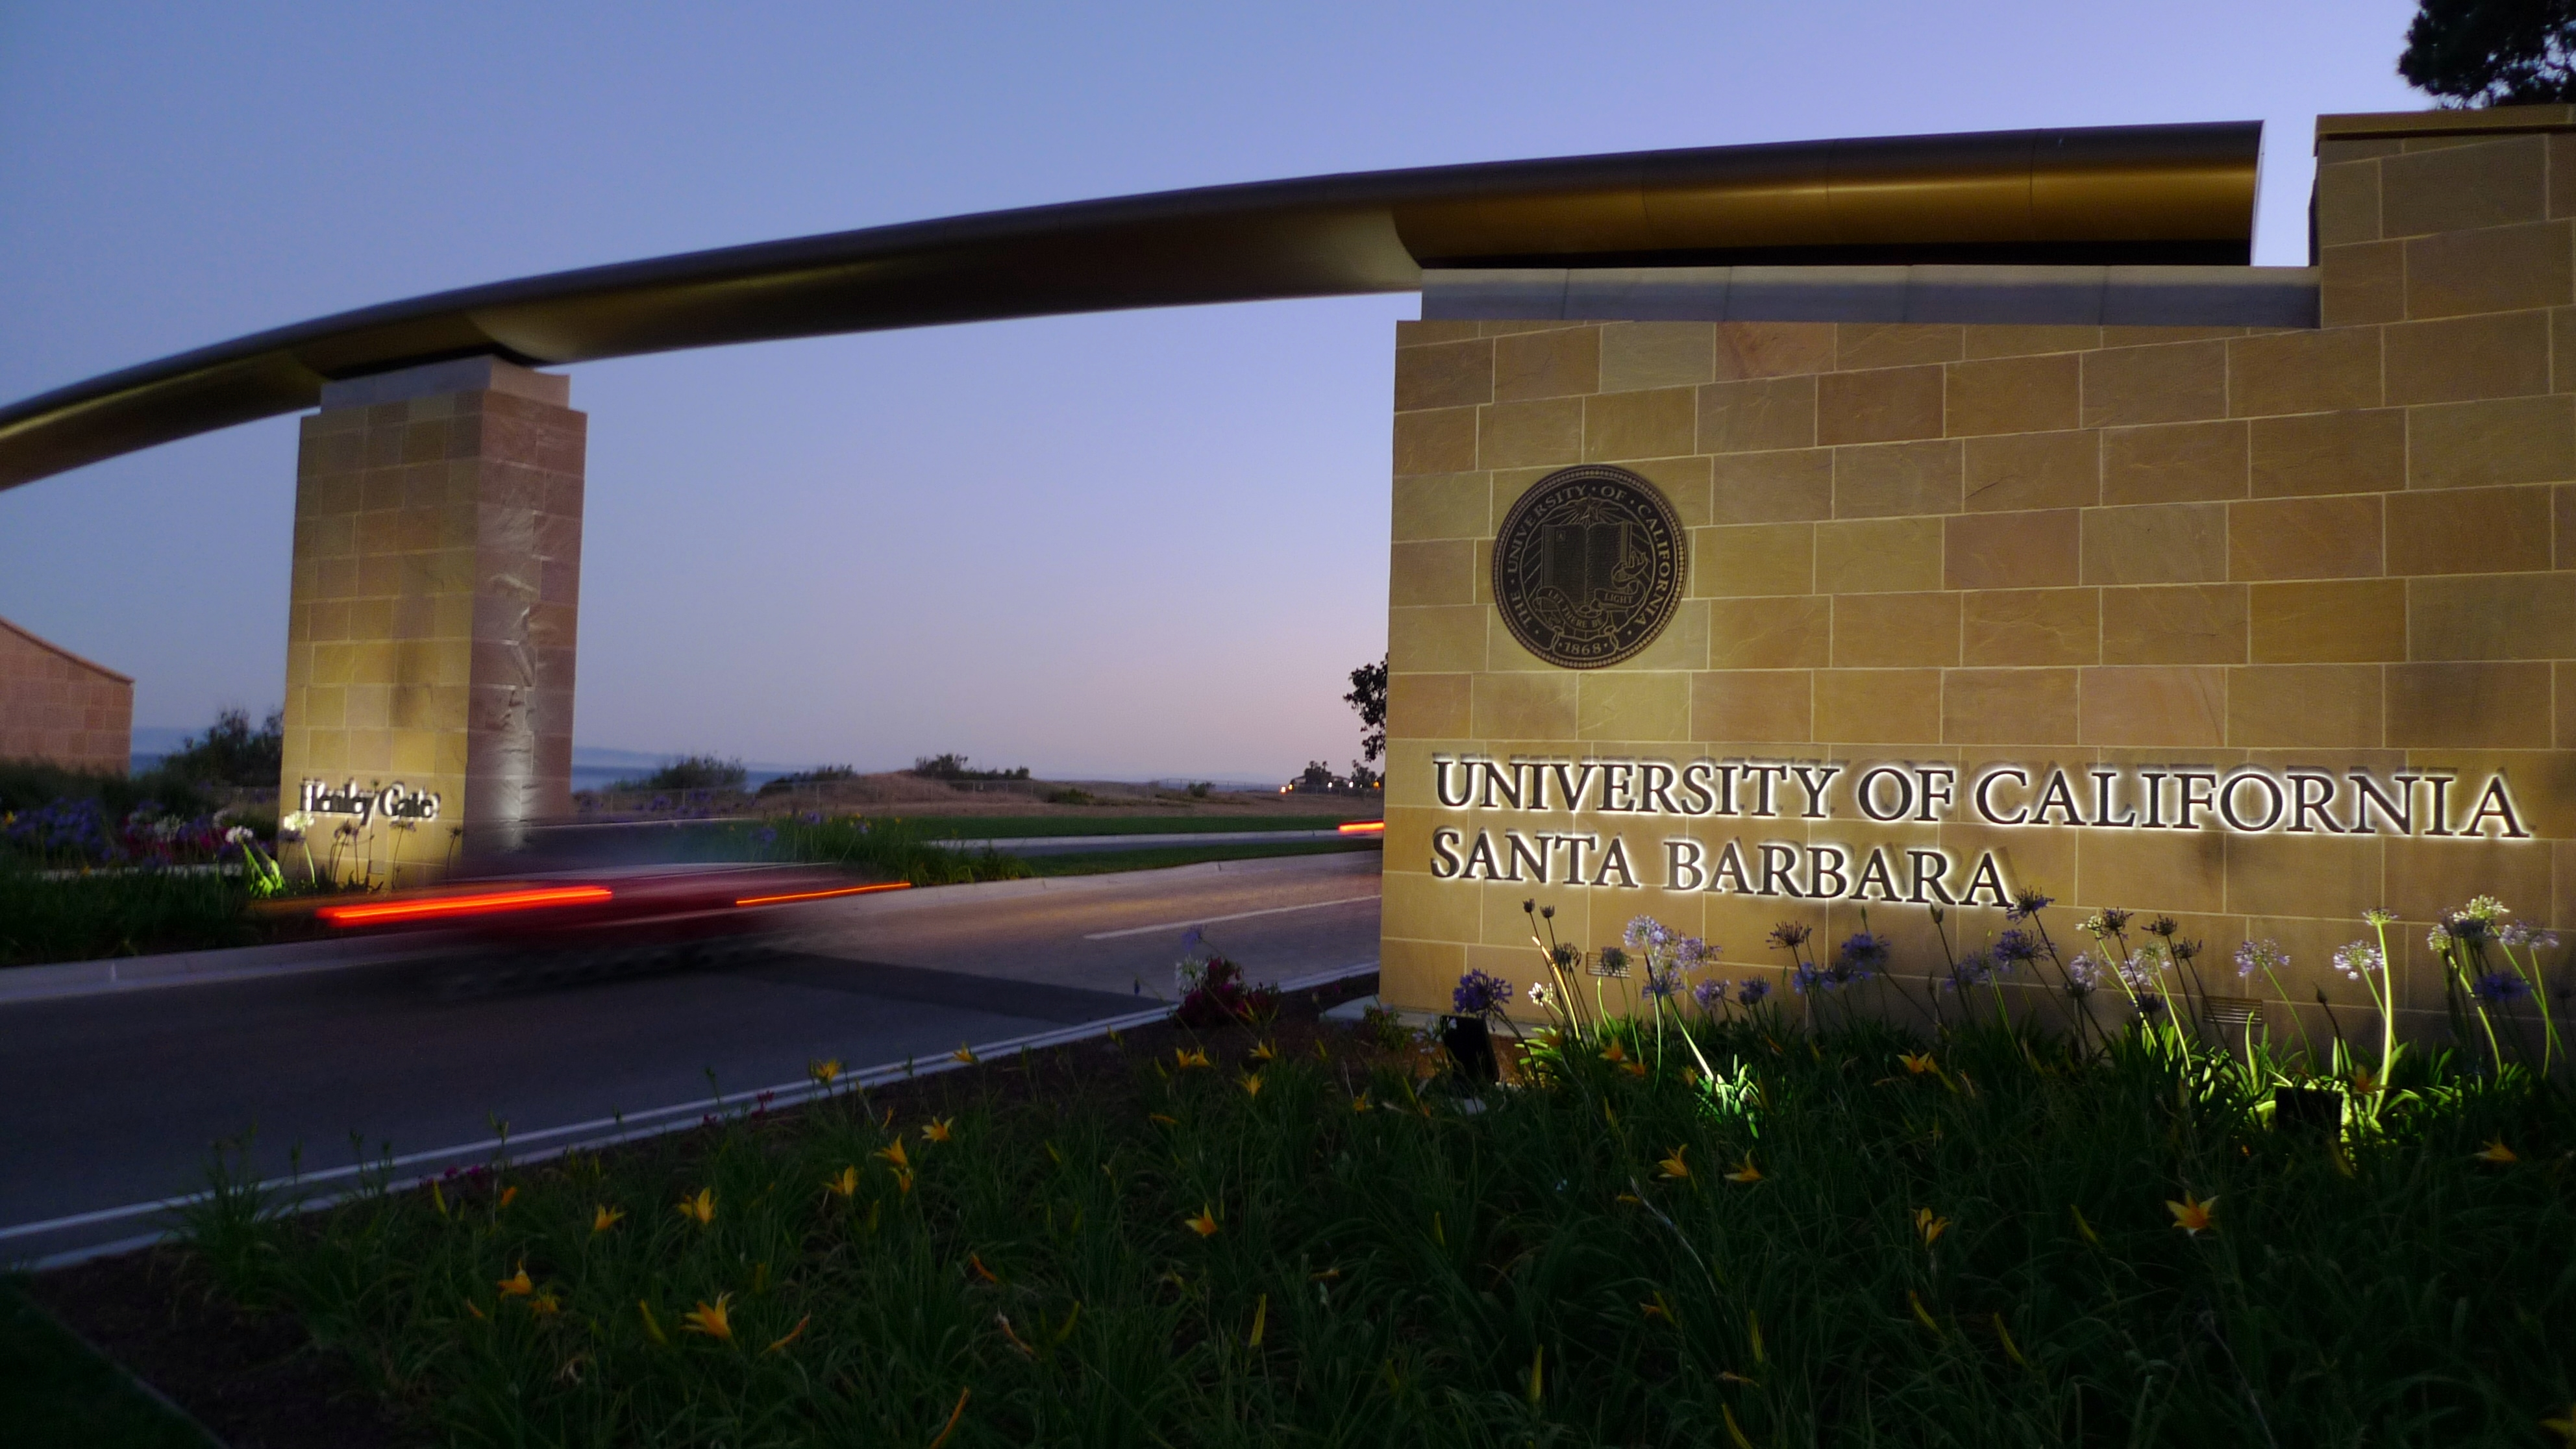 10 Reasons Why UCSB is Better than Cal Poly SLO - OneClass Blog